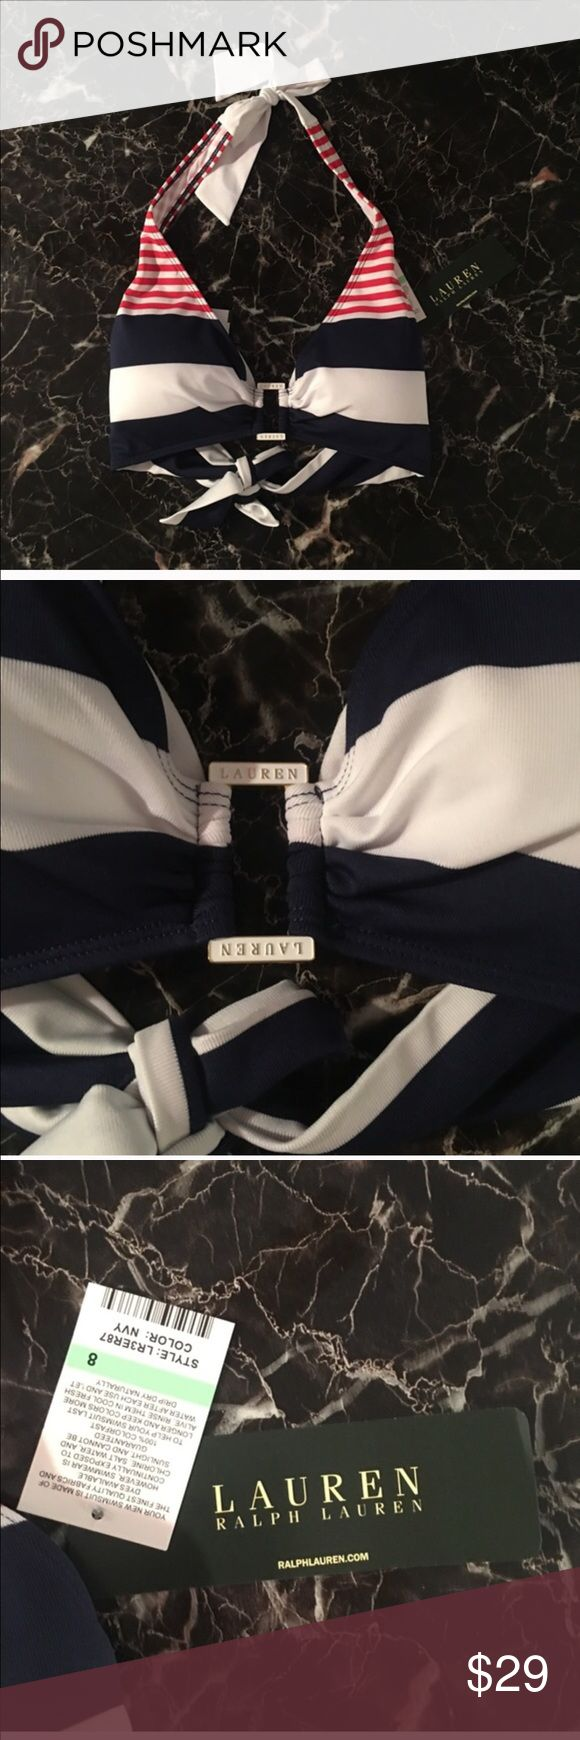 NWT Ralph Lauren Nautical Striped Bikini Top Size 8 NWT Nautical Striped Halter Neck Ralph Lauren Bikini Top. Perfect Condition.  All items come from a smoke free home and are shipped on the same or following day an order is placed.   Reasonable offers are considered and often accepted. Deals on bundles are also available. Ralph Lauren Swim Bikinis